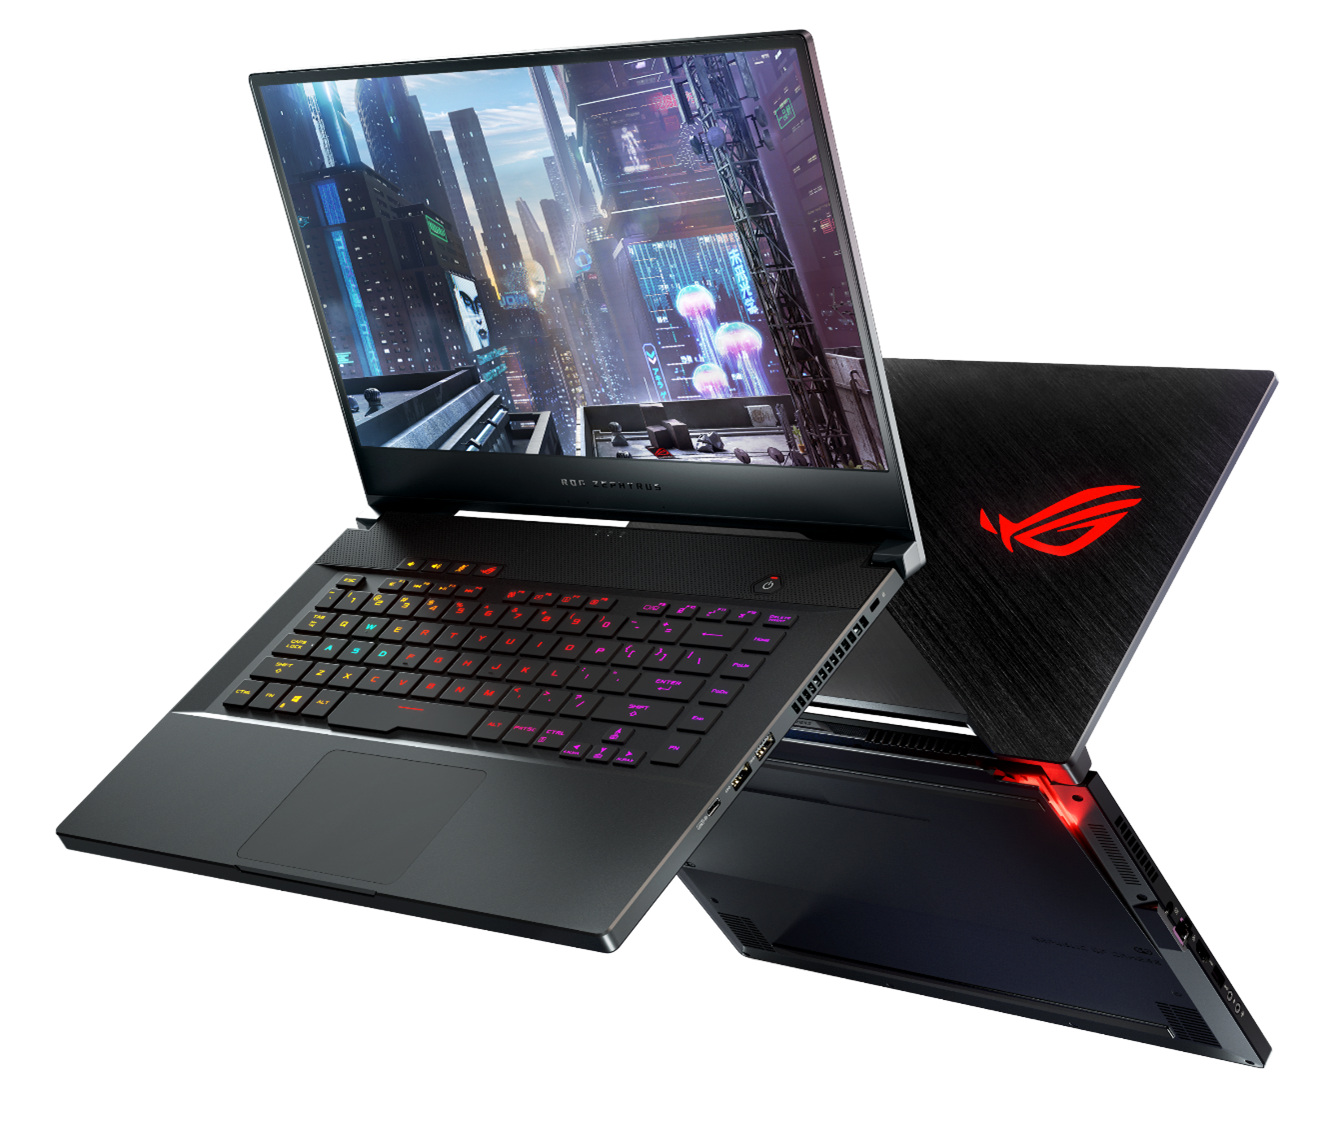 The Asus Zephyrus S GX502 offers a 9th gen Core i7 CPU and